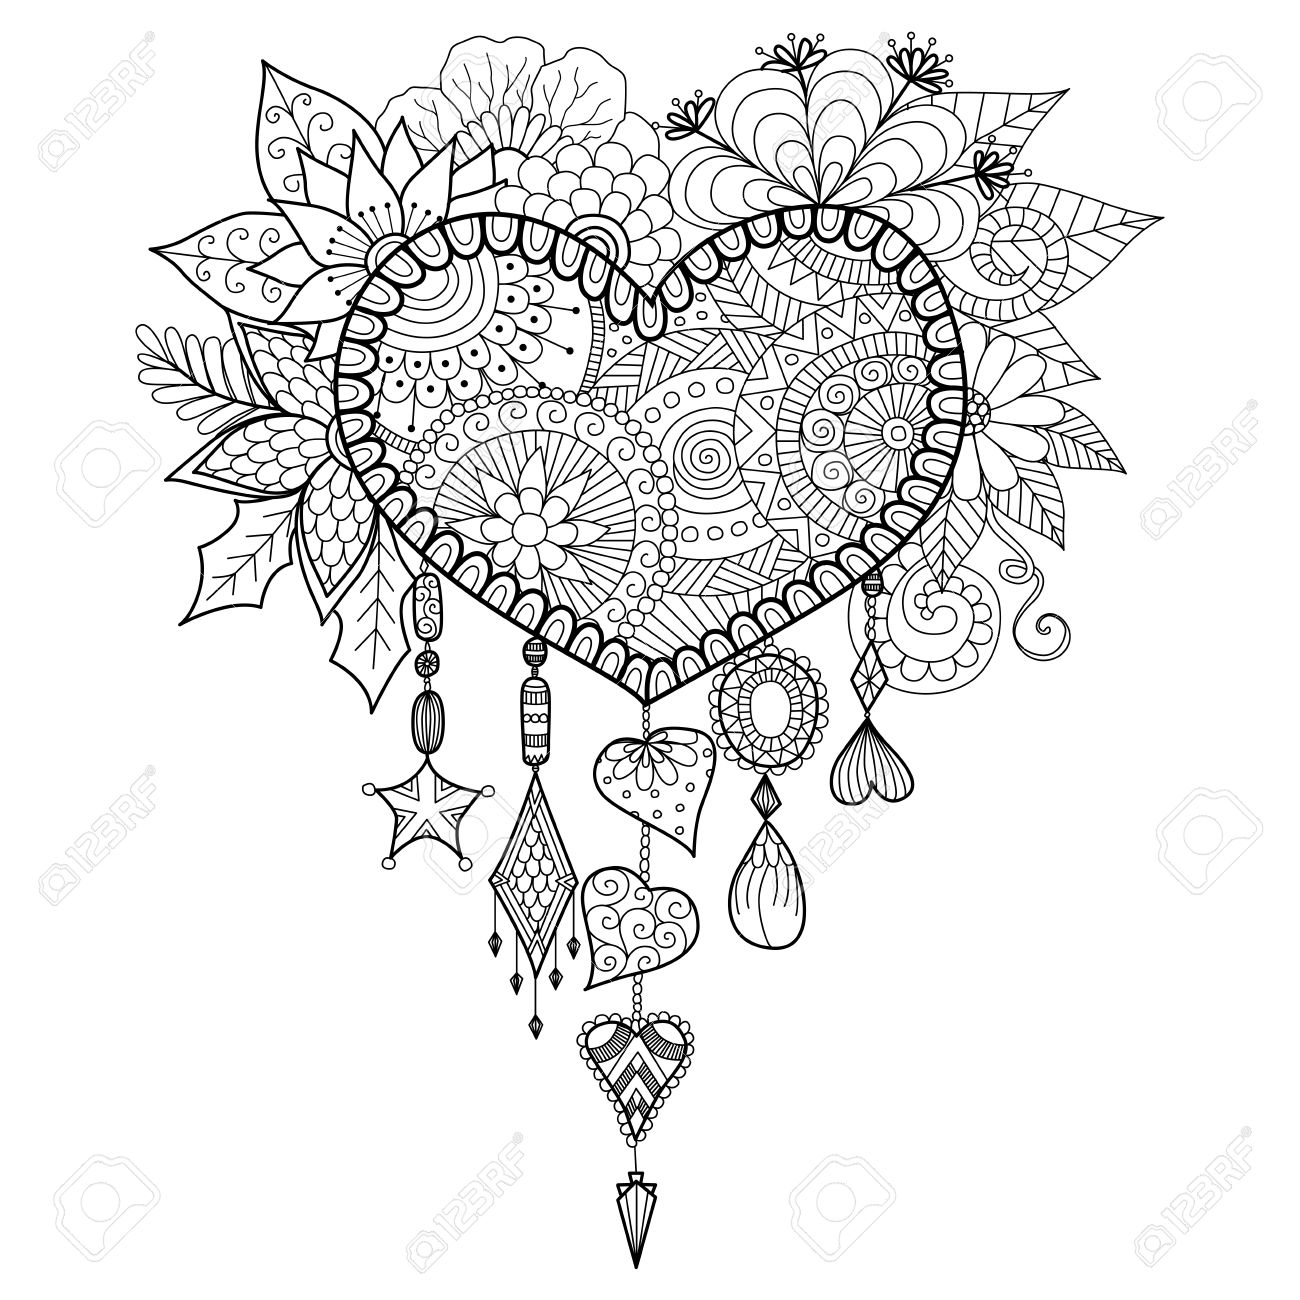 coloring page for adult heart shape floral dream catcher for coloring book for adult illustration - Barbie Dream House Coloring Pages